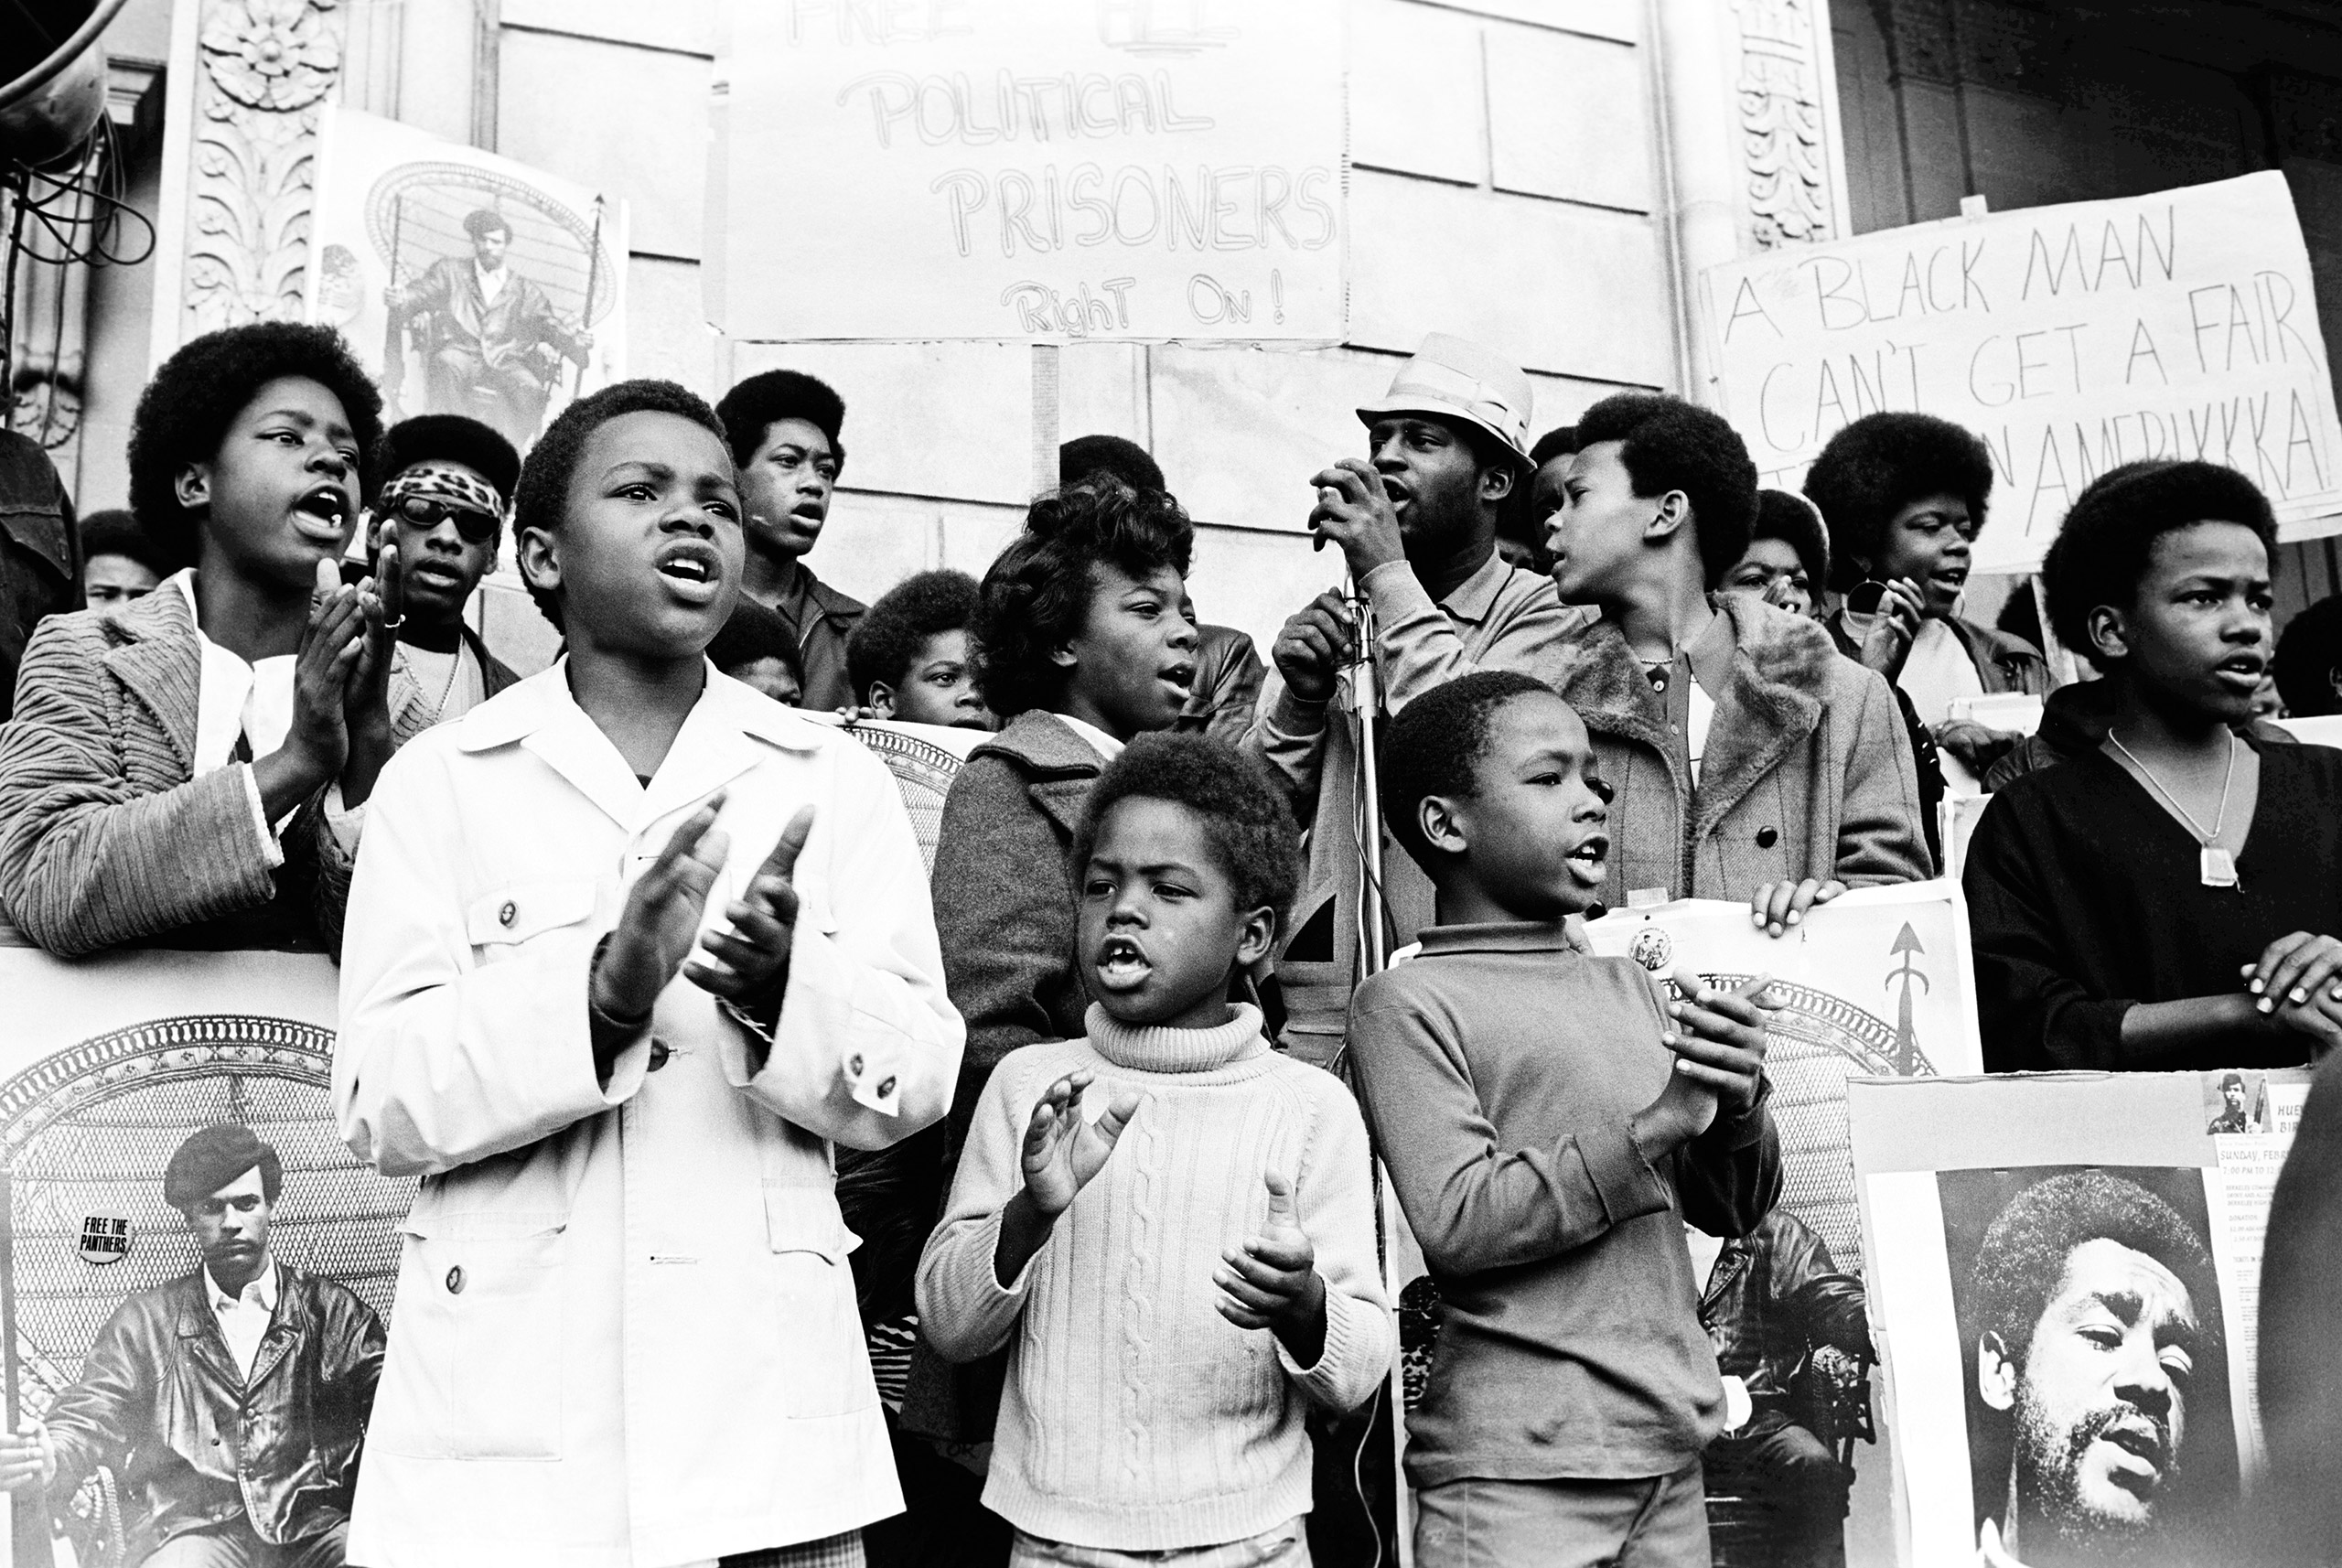 Free Huey / Free Bobby rally in front of the Federal Building, San Francisco, February 1970.